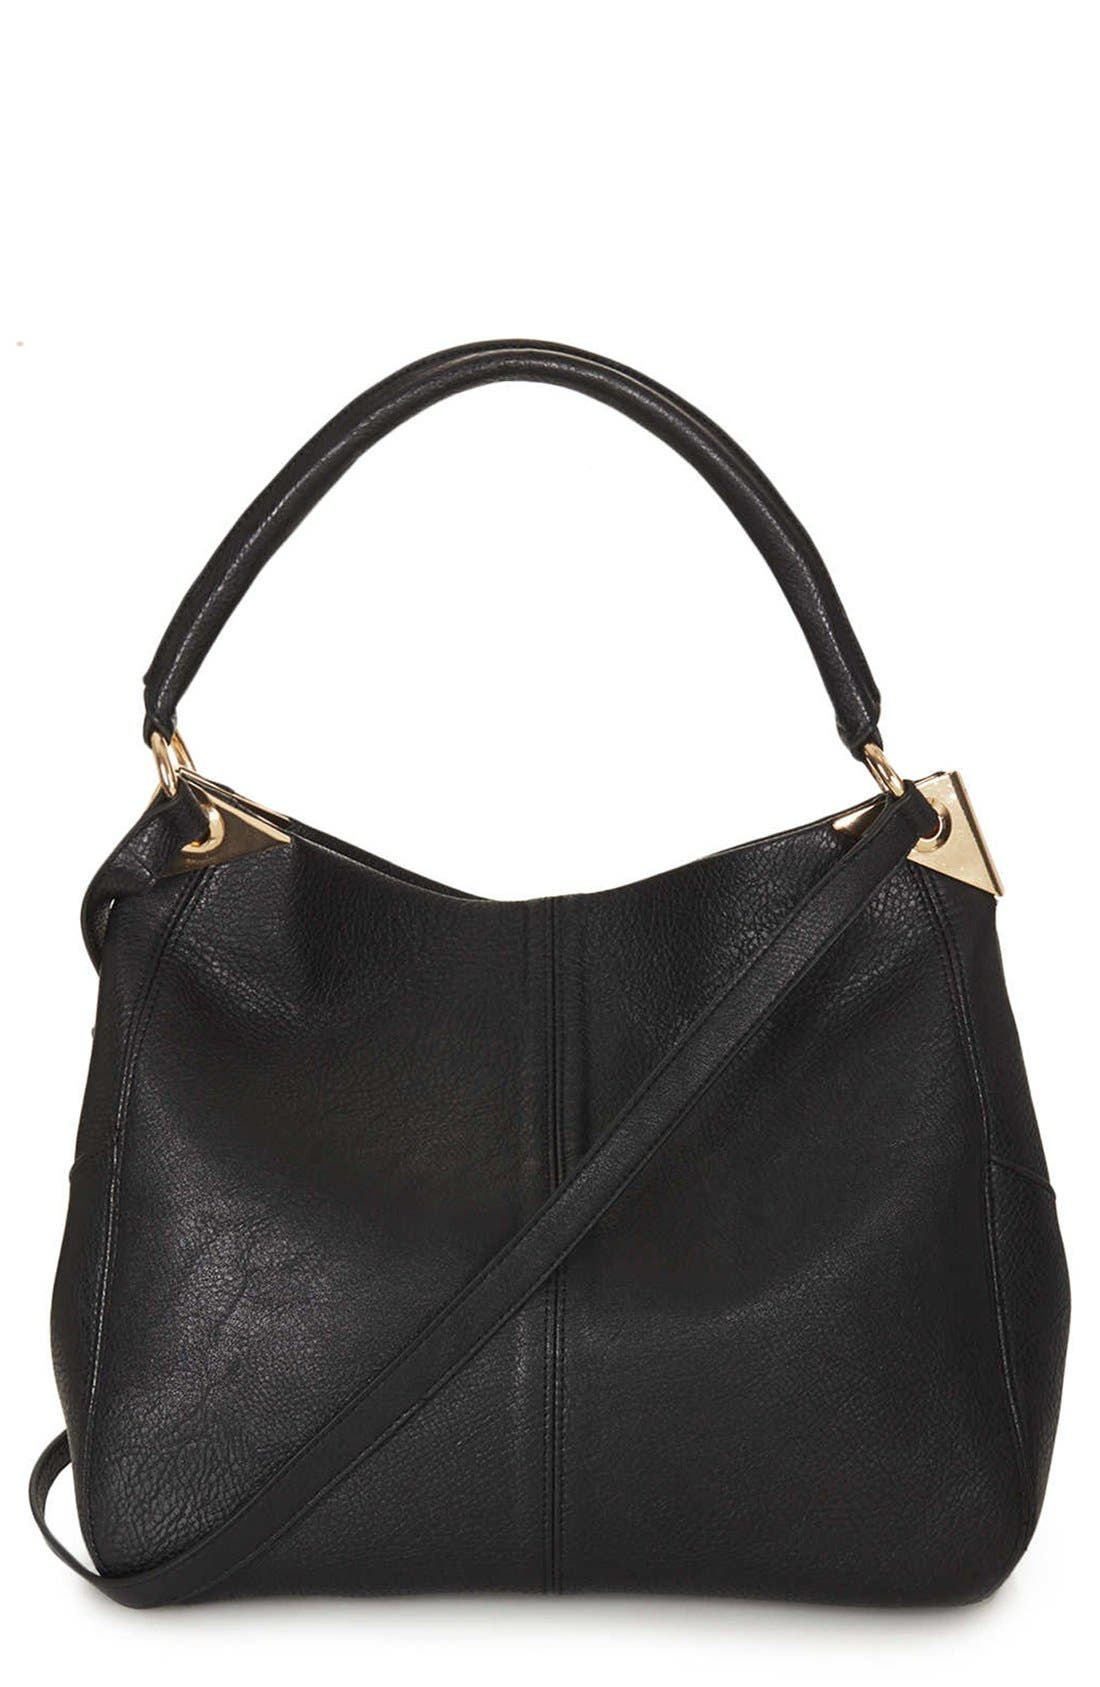 Alternate Image 1 Selected - Topshop Hinged Hobo Bag